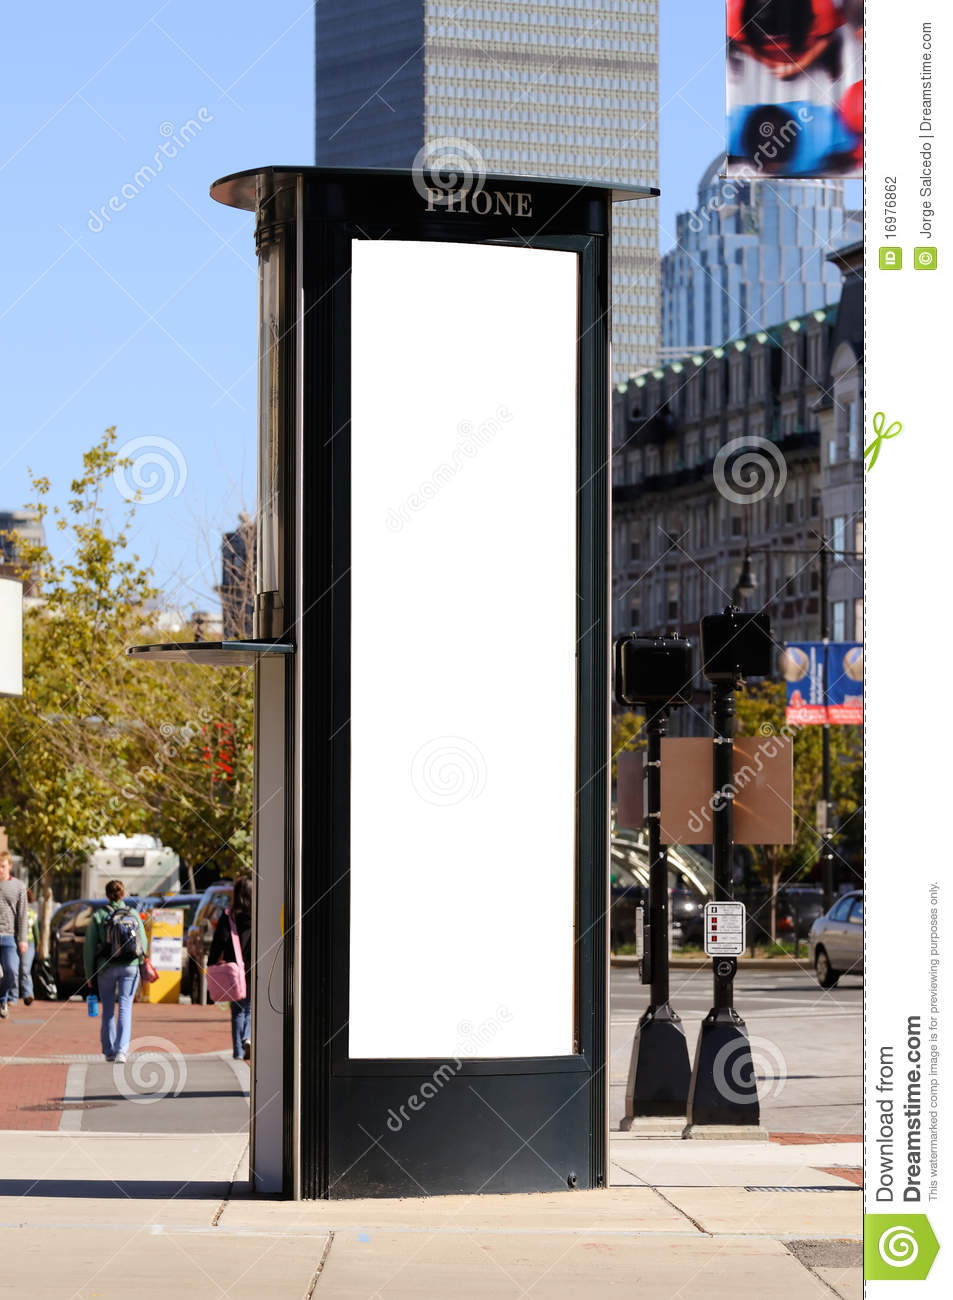 Tall, vertical billboard on phone booth